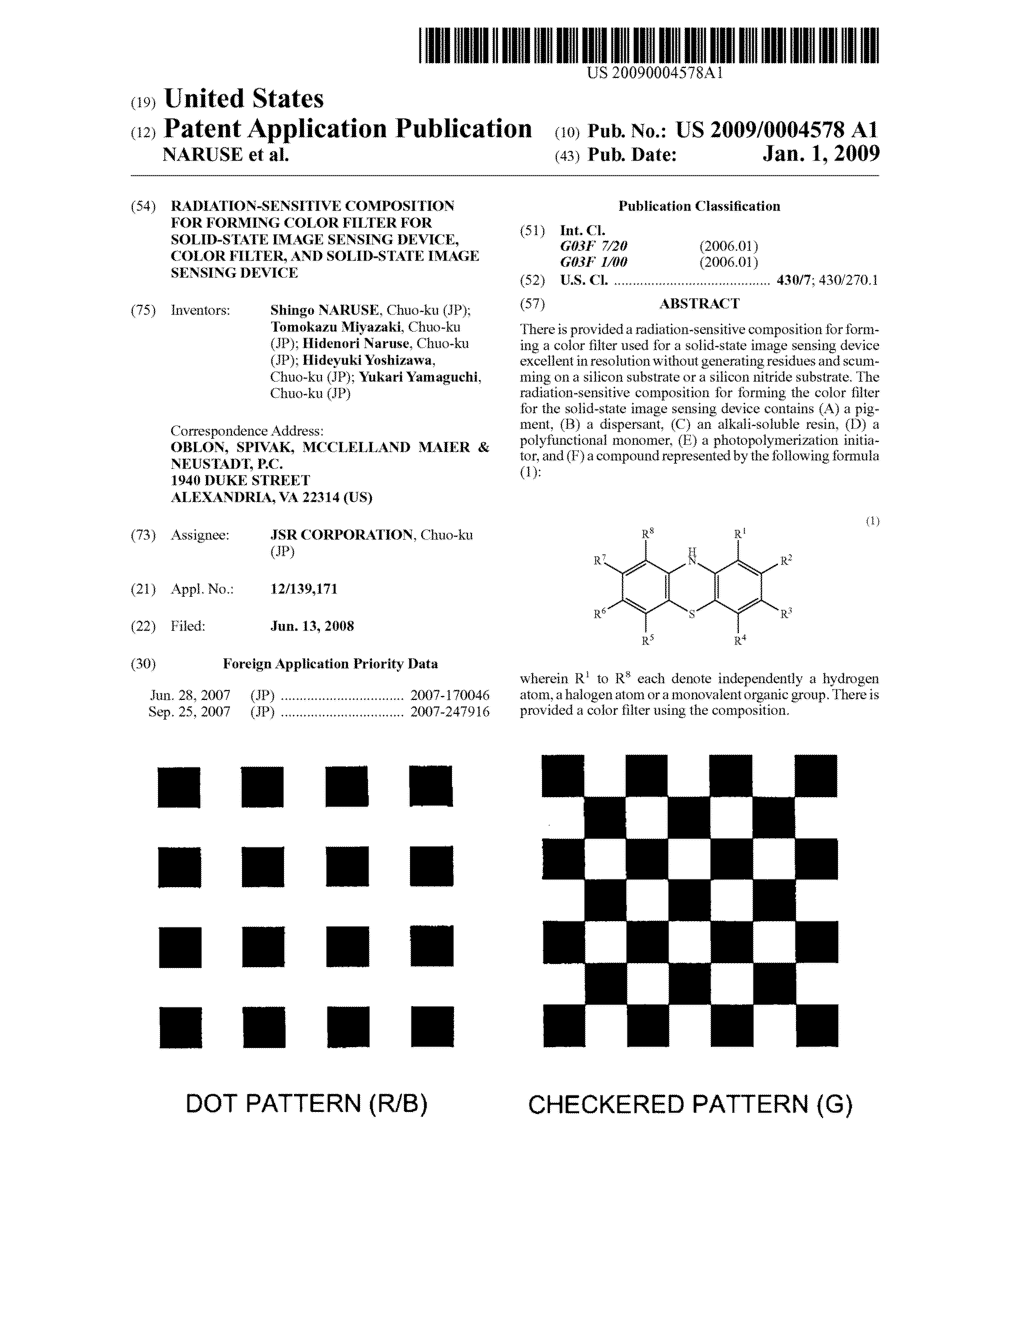 RADIATION-SENSITIVE COMPOSITION FOR FORMING COLOR FILTER FOR SOLID-STATE IMAGE SENSING DEVICE, COLOR FILTER, AND SOLID-STATE IMAGE SENSING DEVICE - diagram, schematic, and image 01